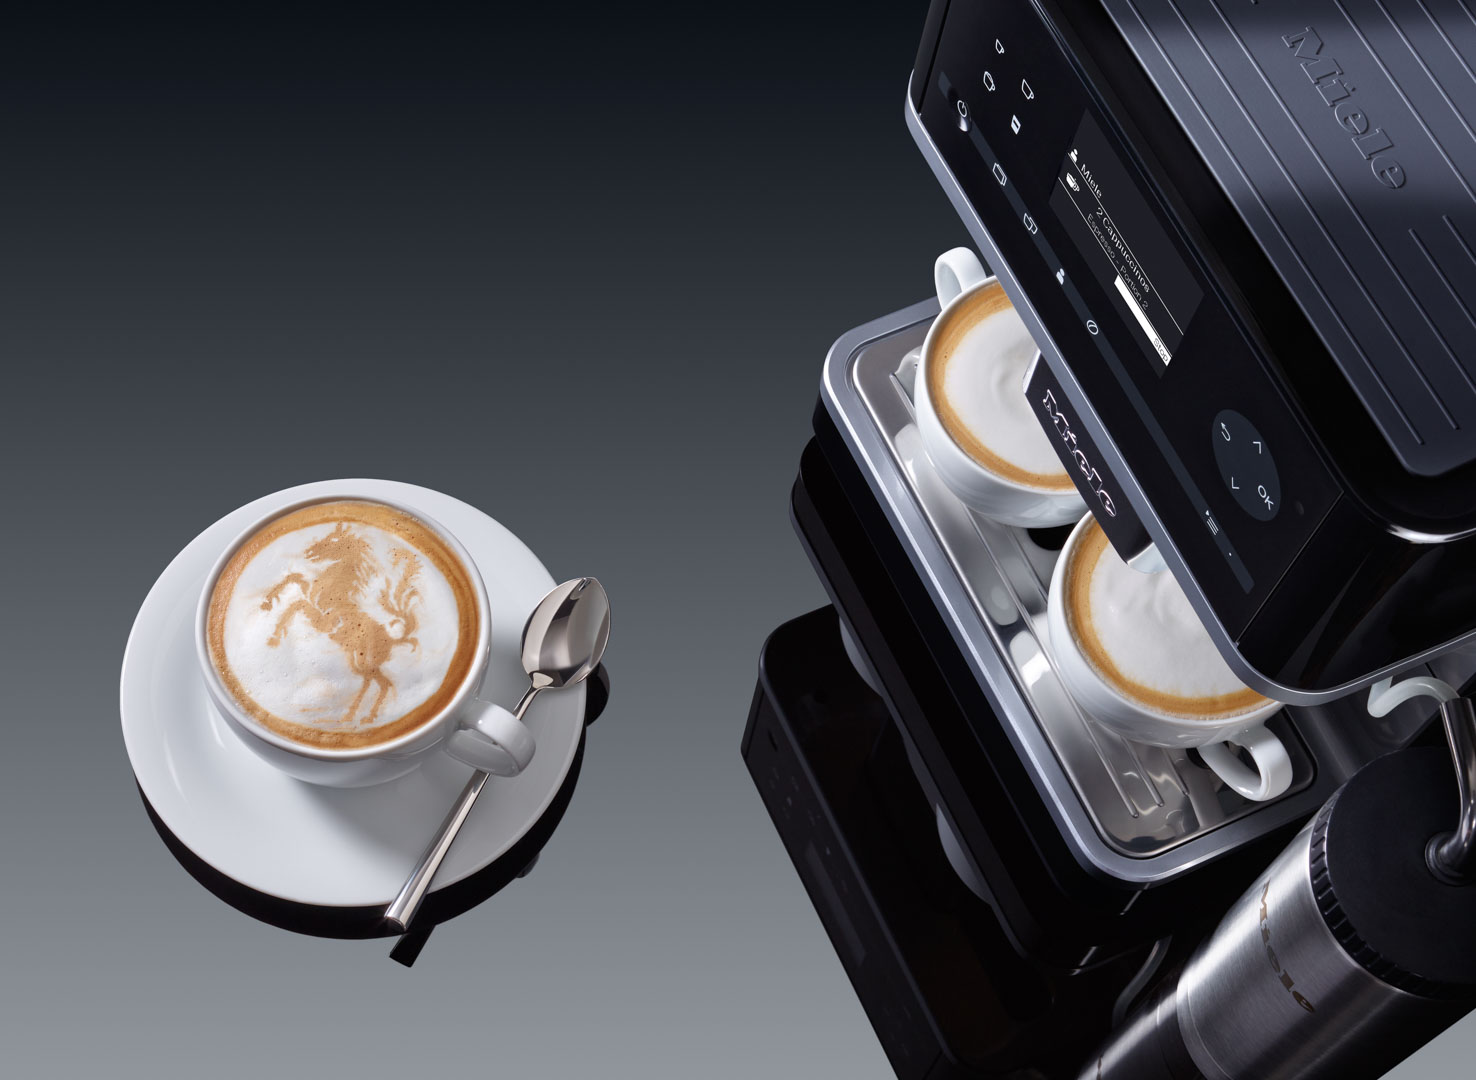 Miele Inspirational Coffee Systems